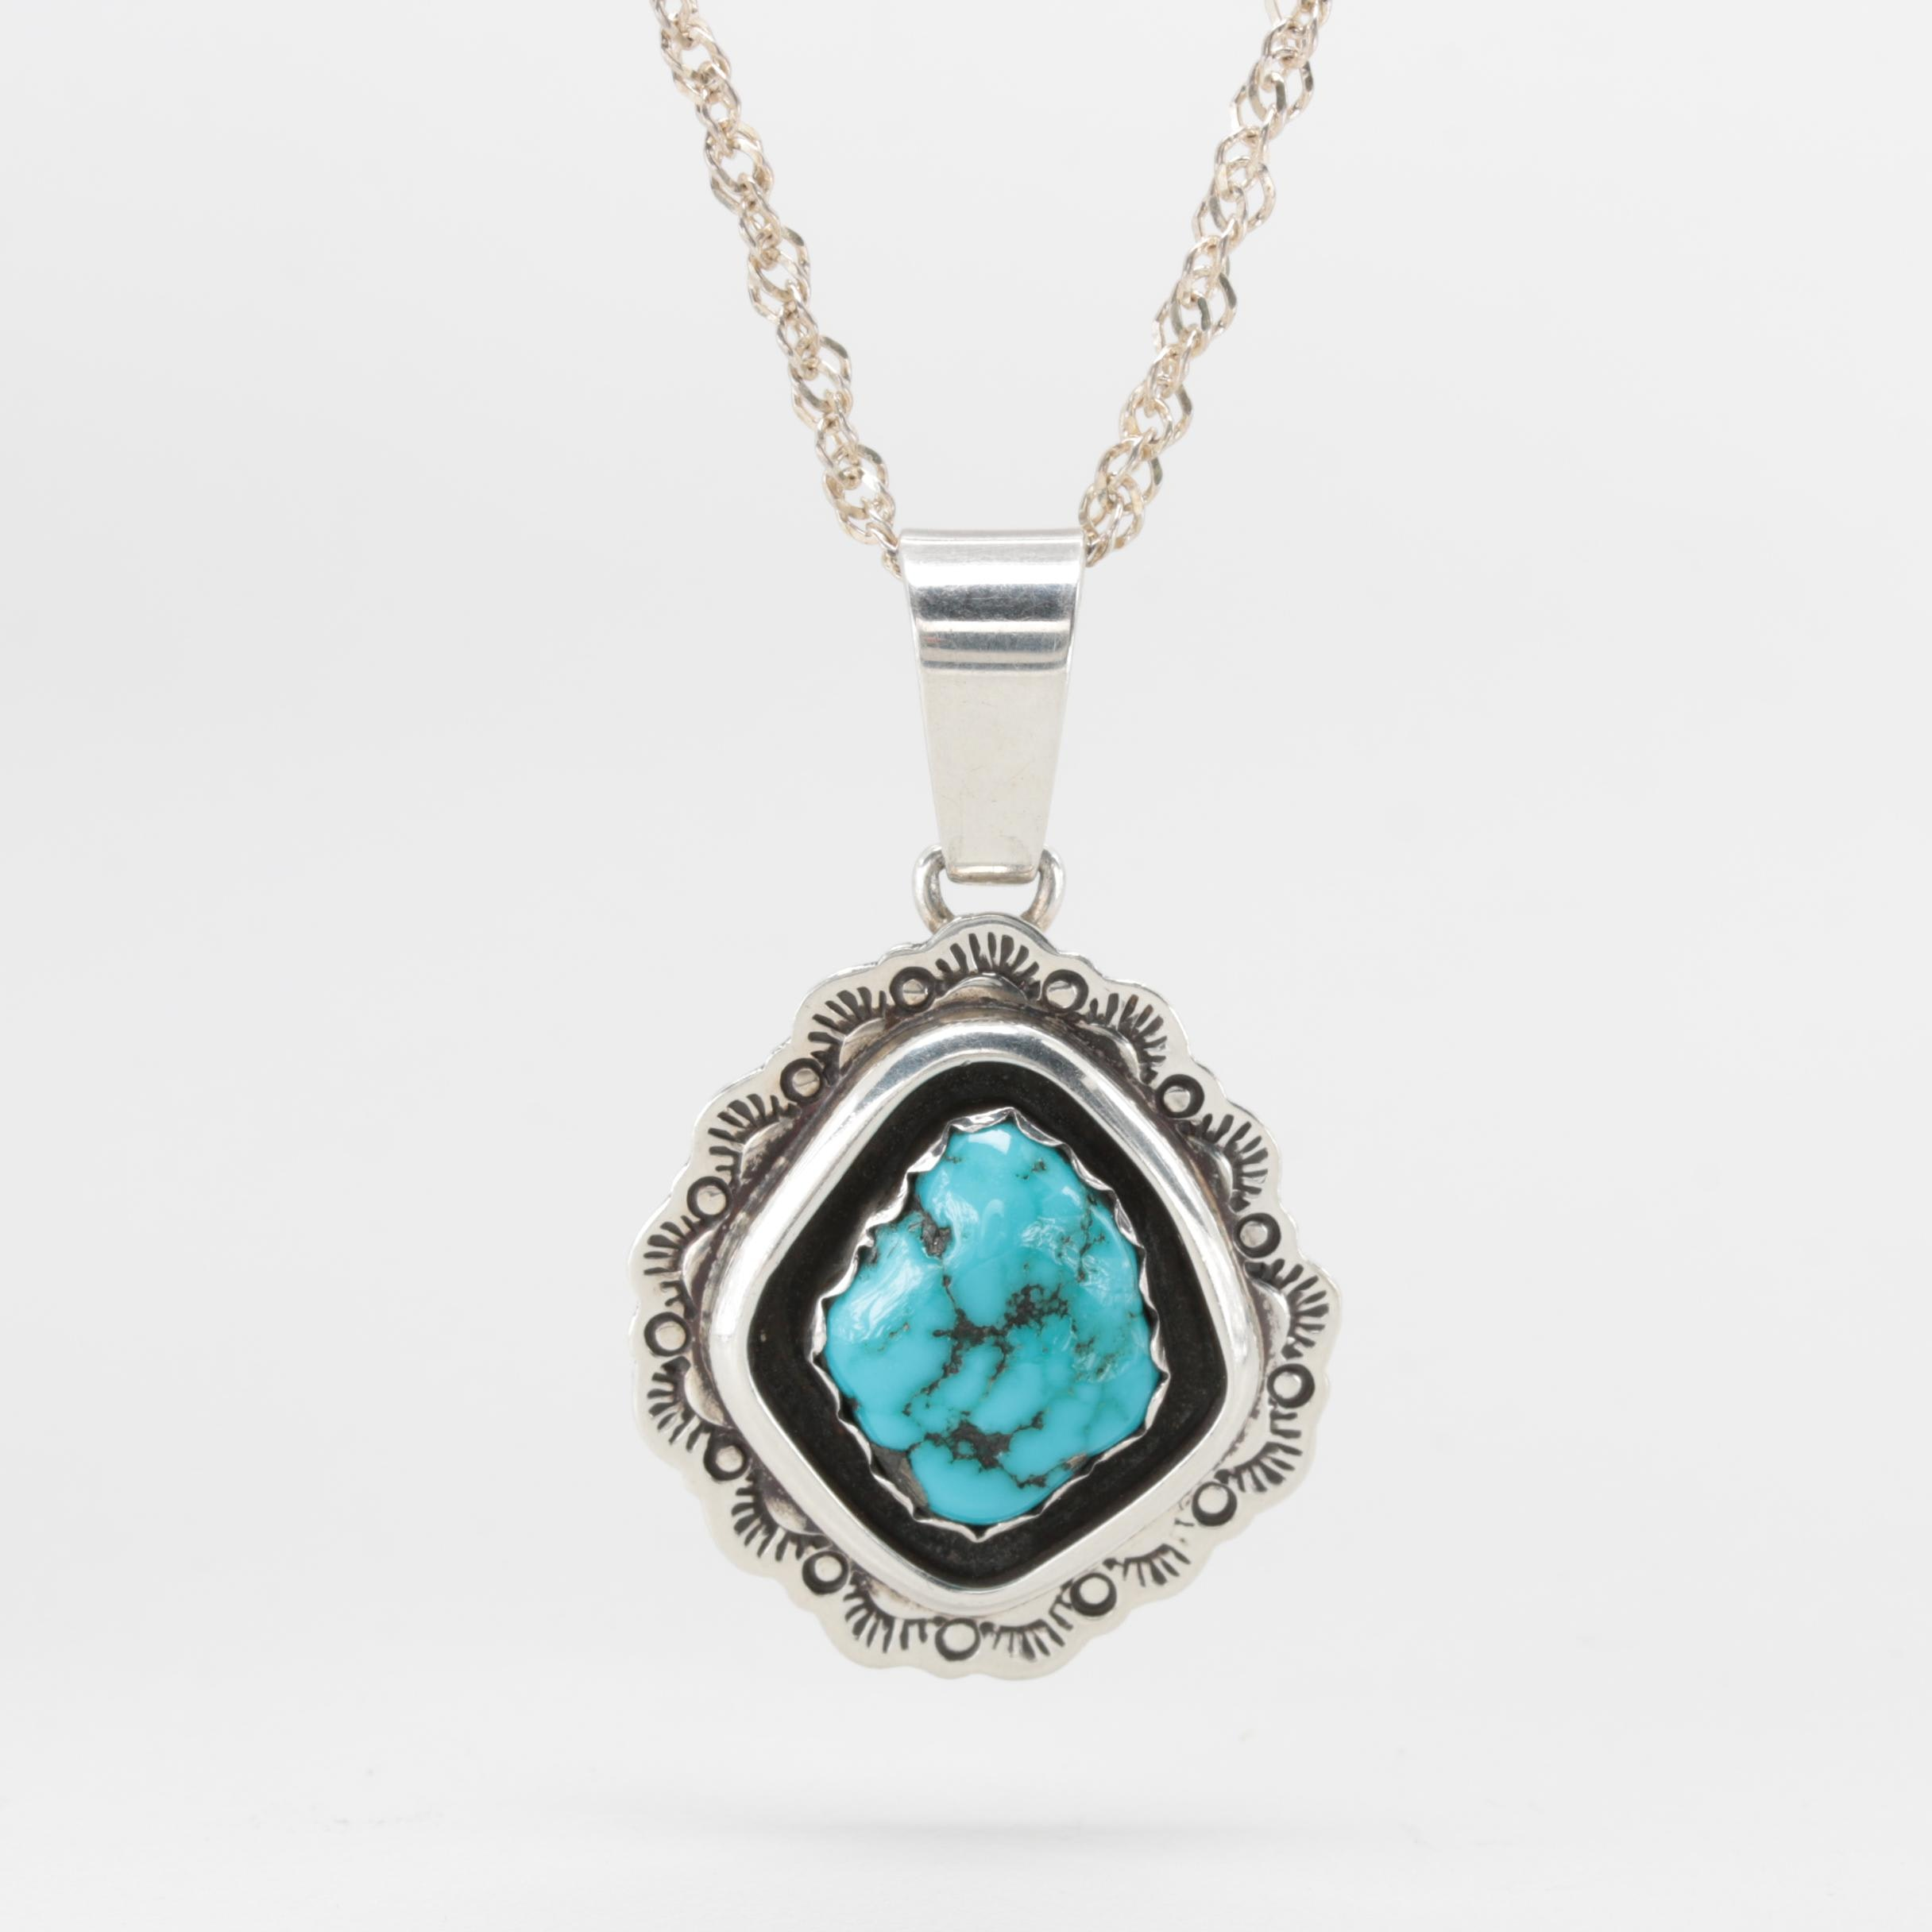 Gil Platero Navajo Diné Sterling Silver Turquoise Pendant Necklace